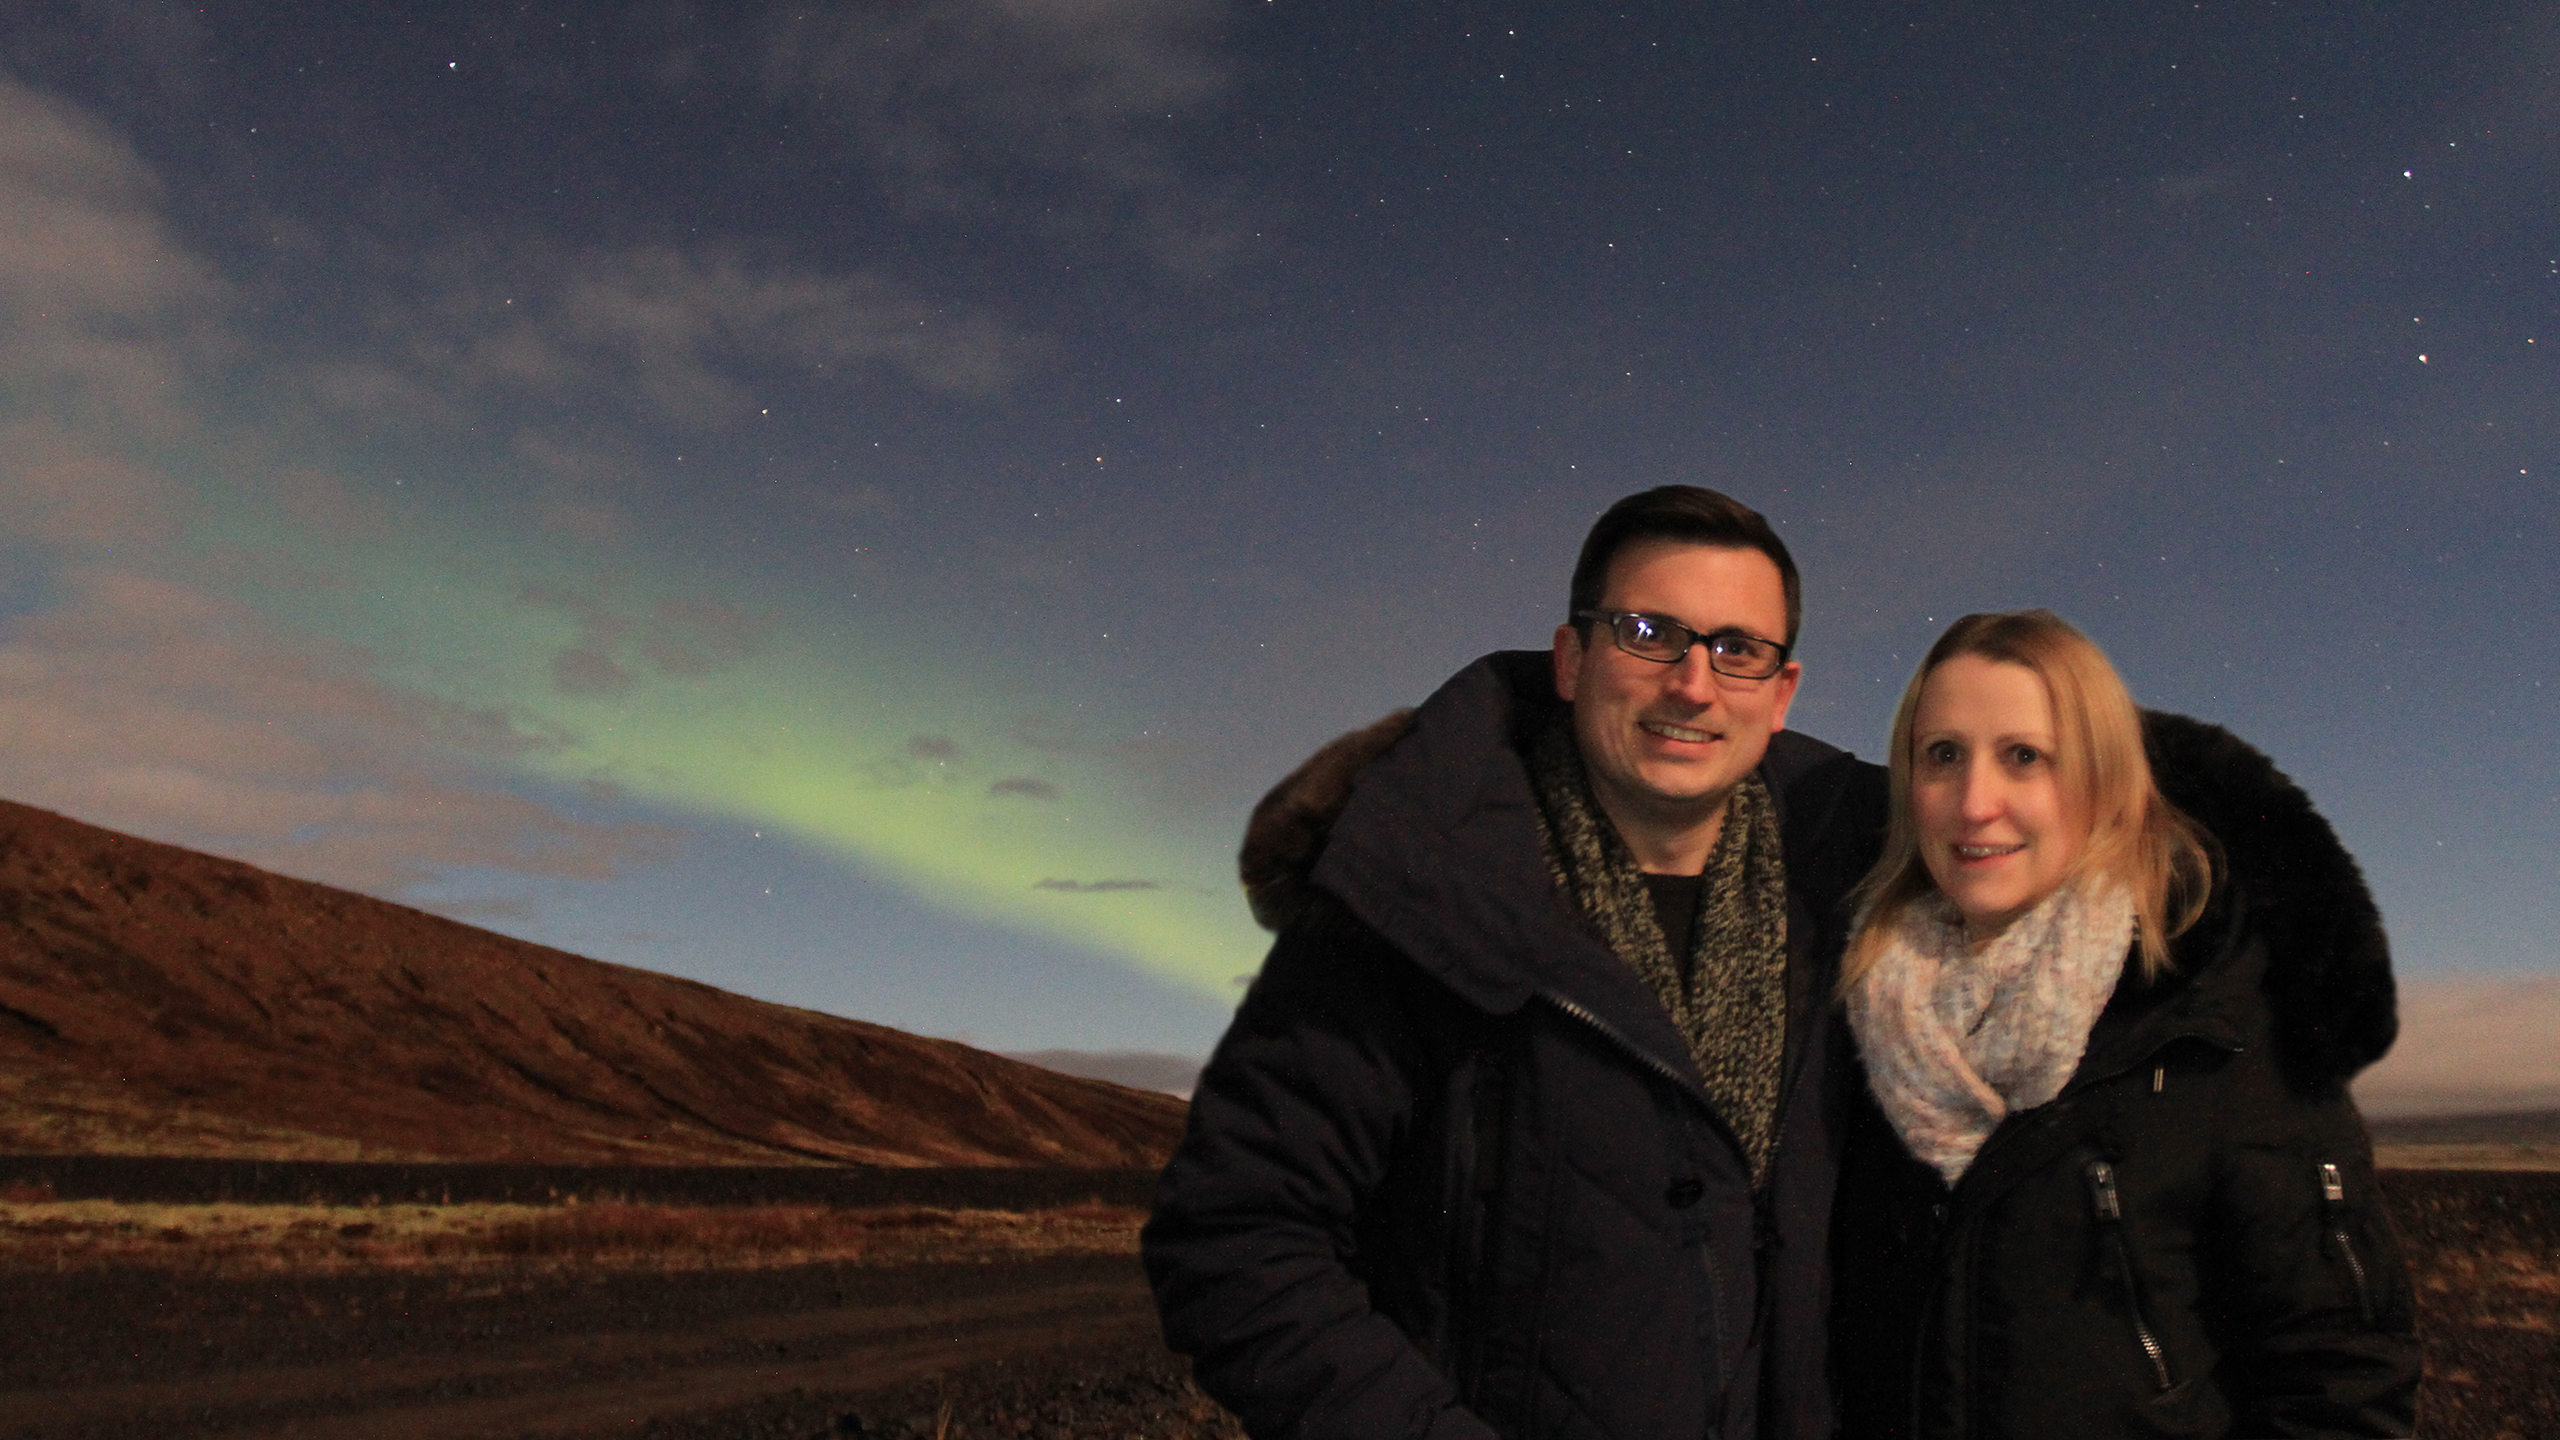 Me and Mrs Hakes in front of the Northern Lights in Iceland